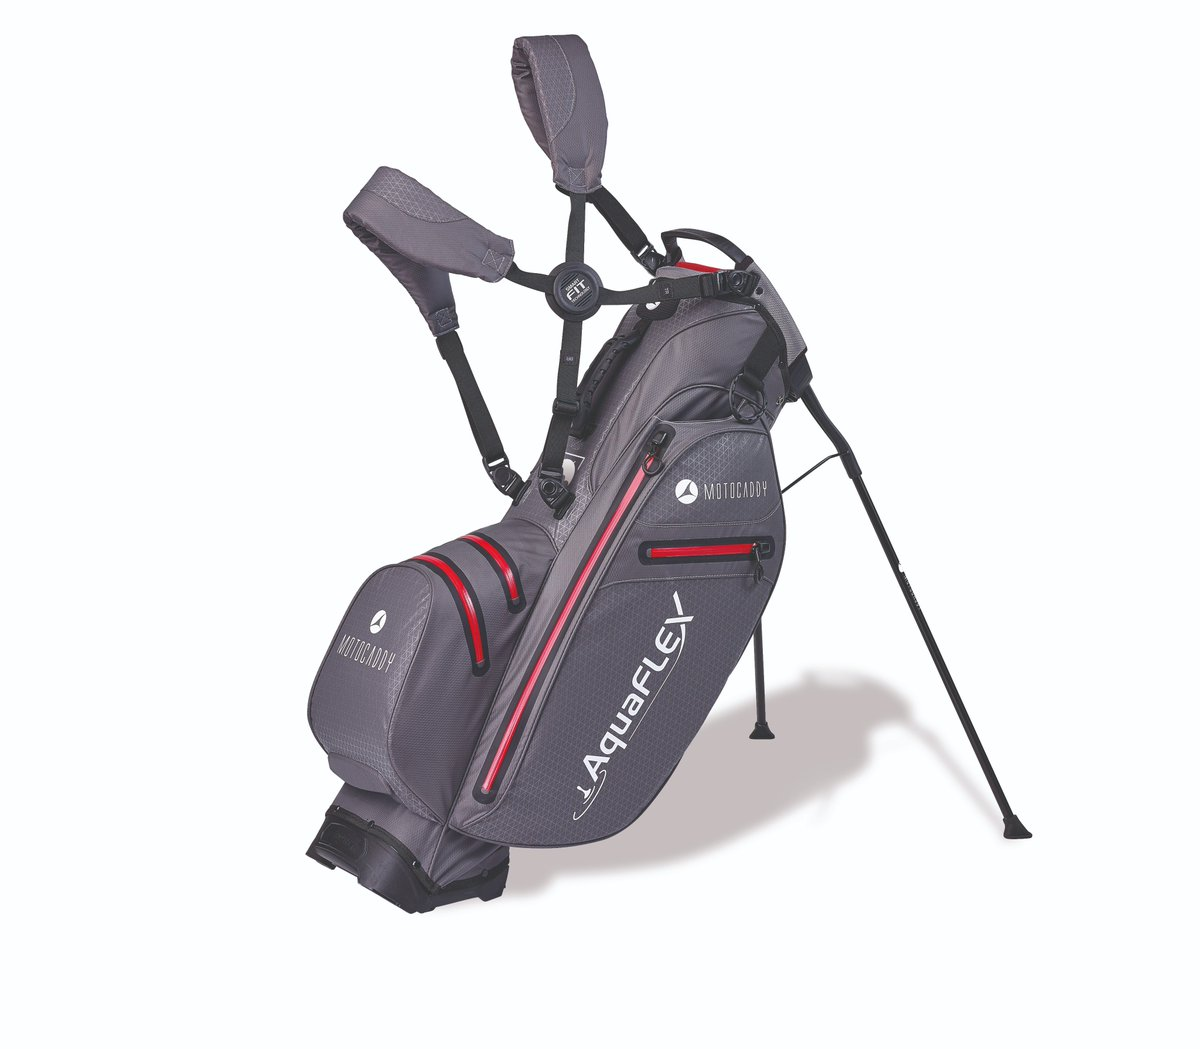 WIN! a Motocaddy AquaFLEX bag 😍  1) RT this post 2) FOLLOW us and @MotocaddyGolf  3) SUBSCRIBE to our YouTube - http://bit.ly/2xpIlIJ